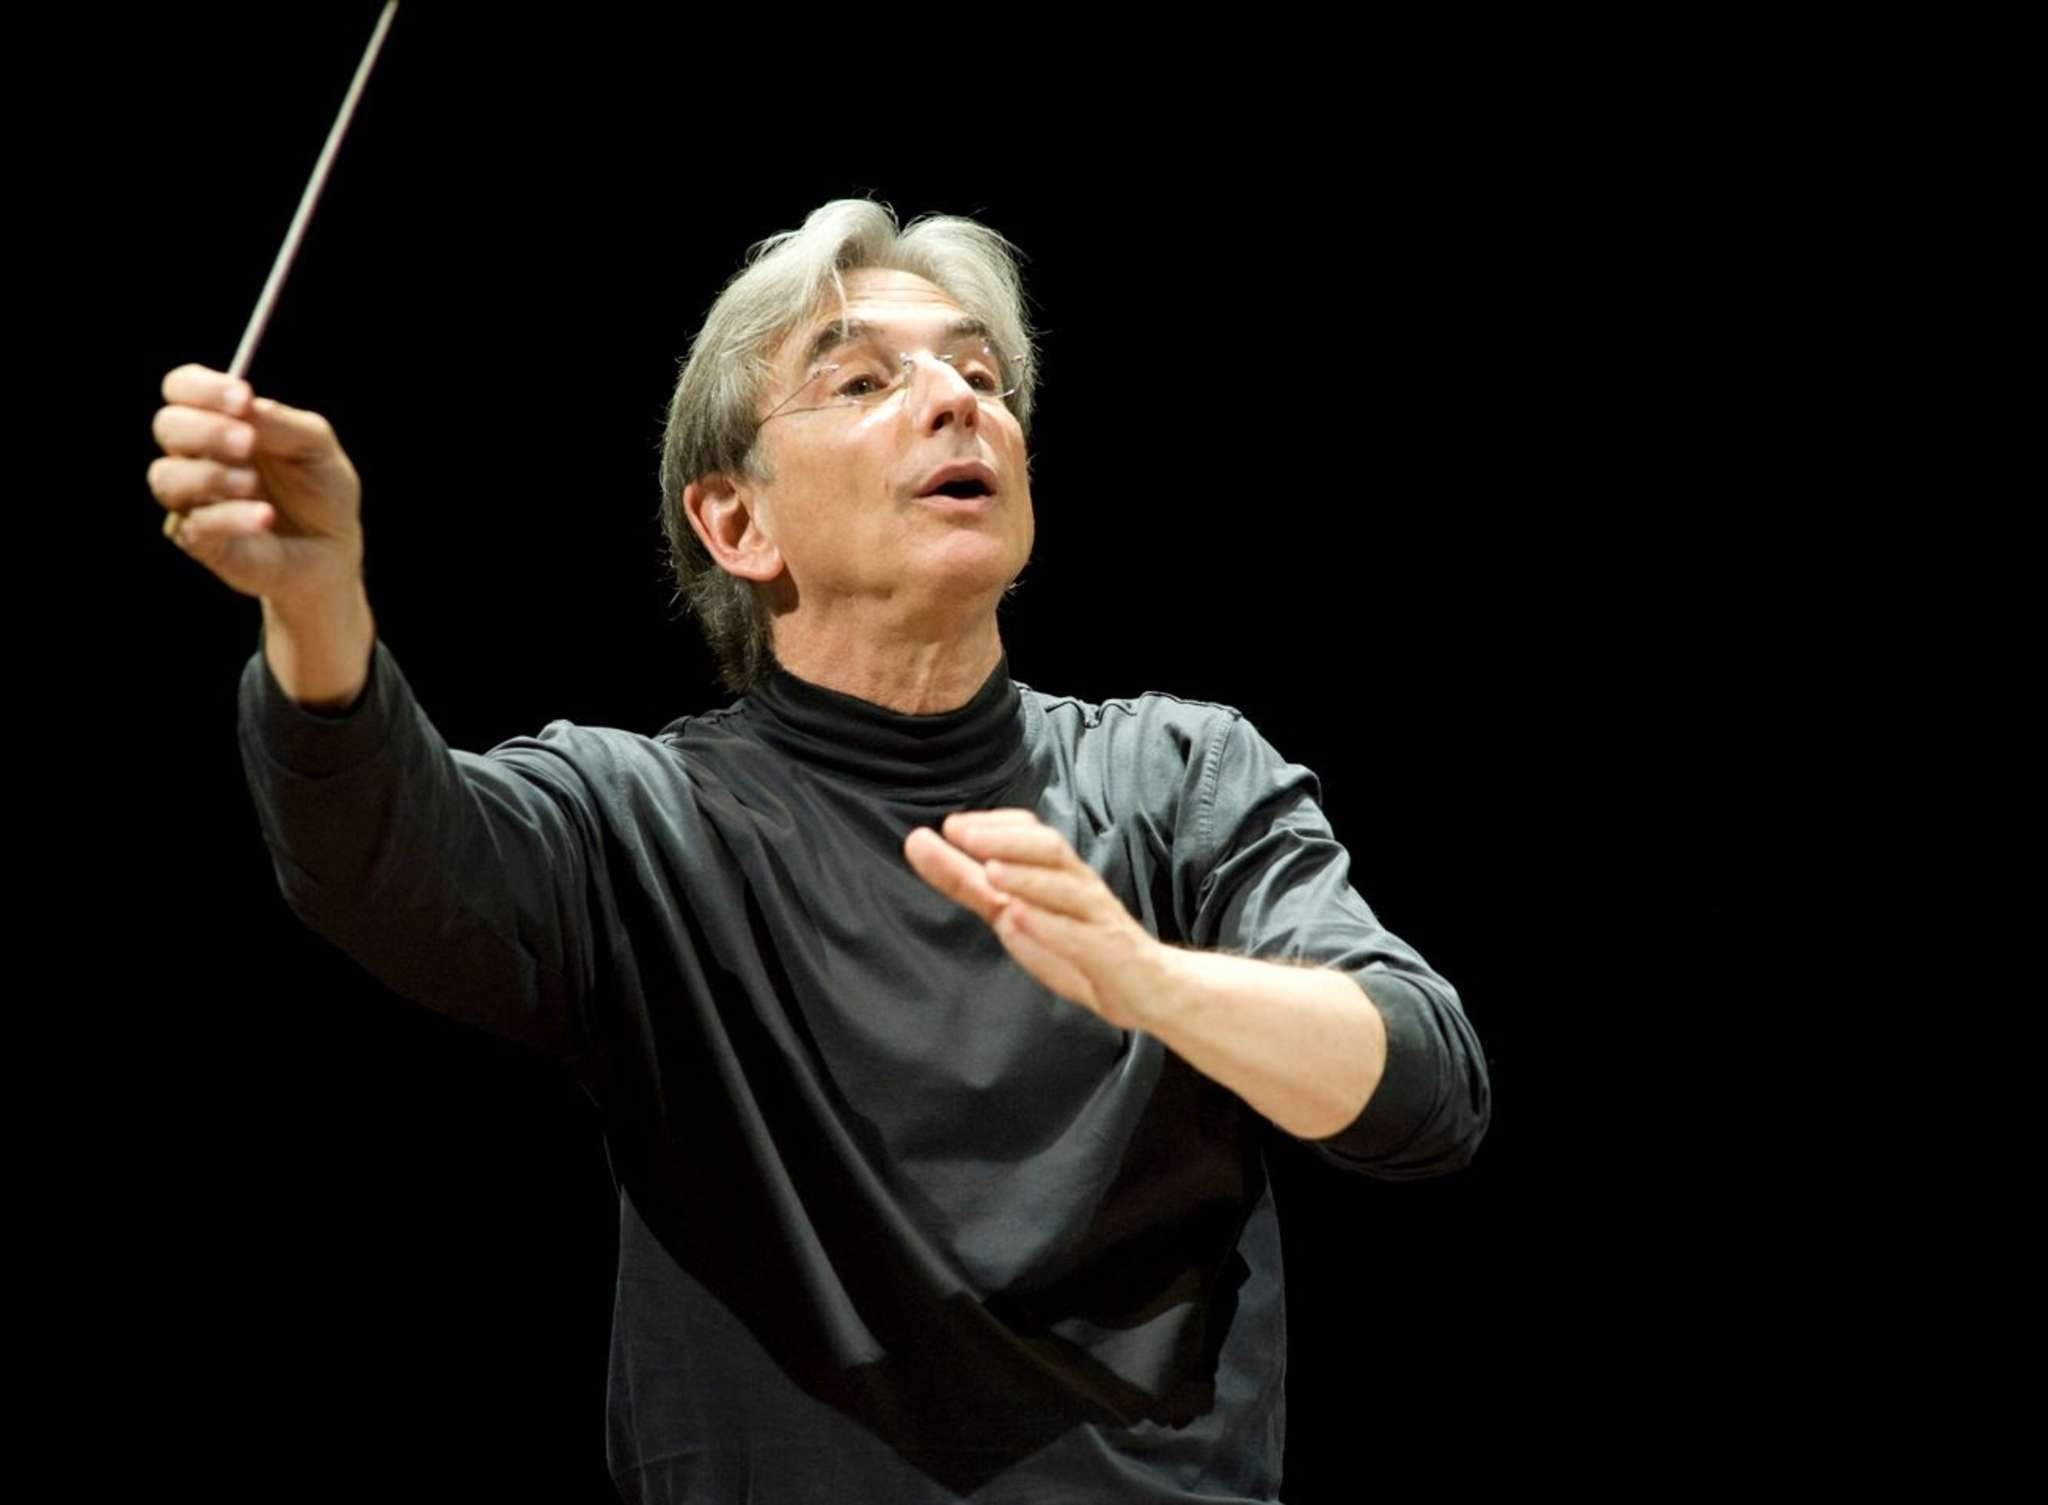 Michael Tilson Thomas has a style vastly different from that of the man - James Levine - he replaced as guest conductor.